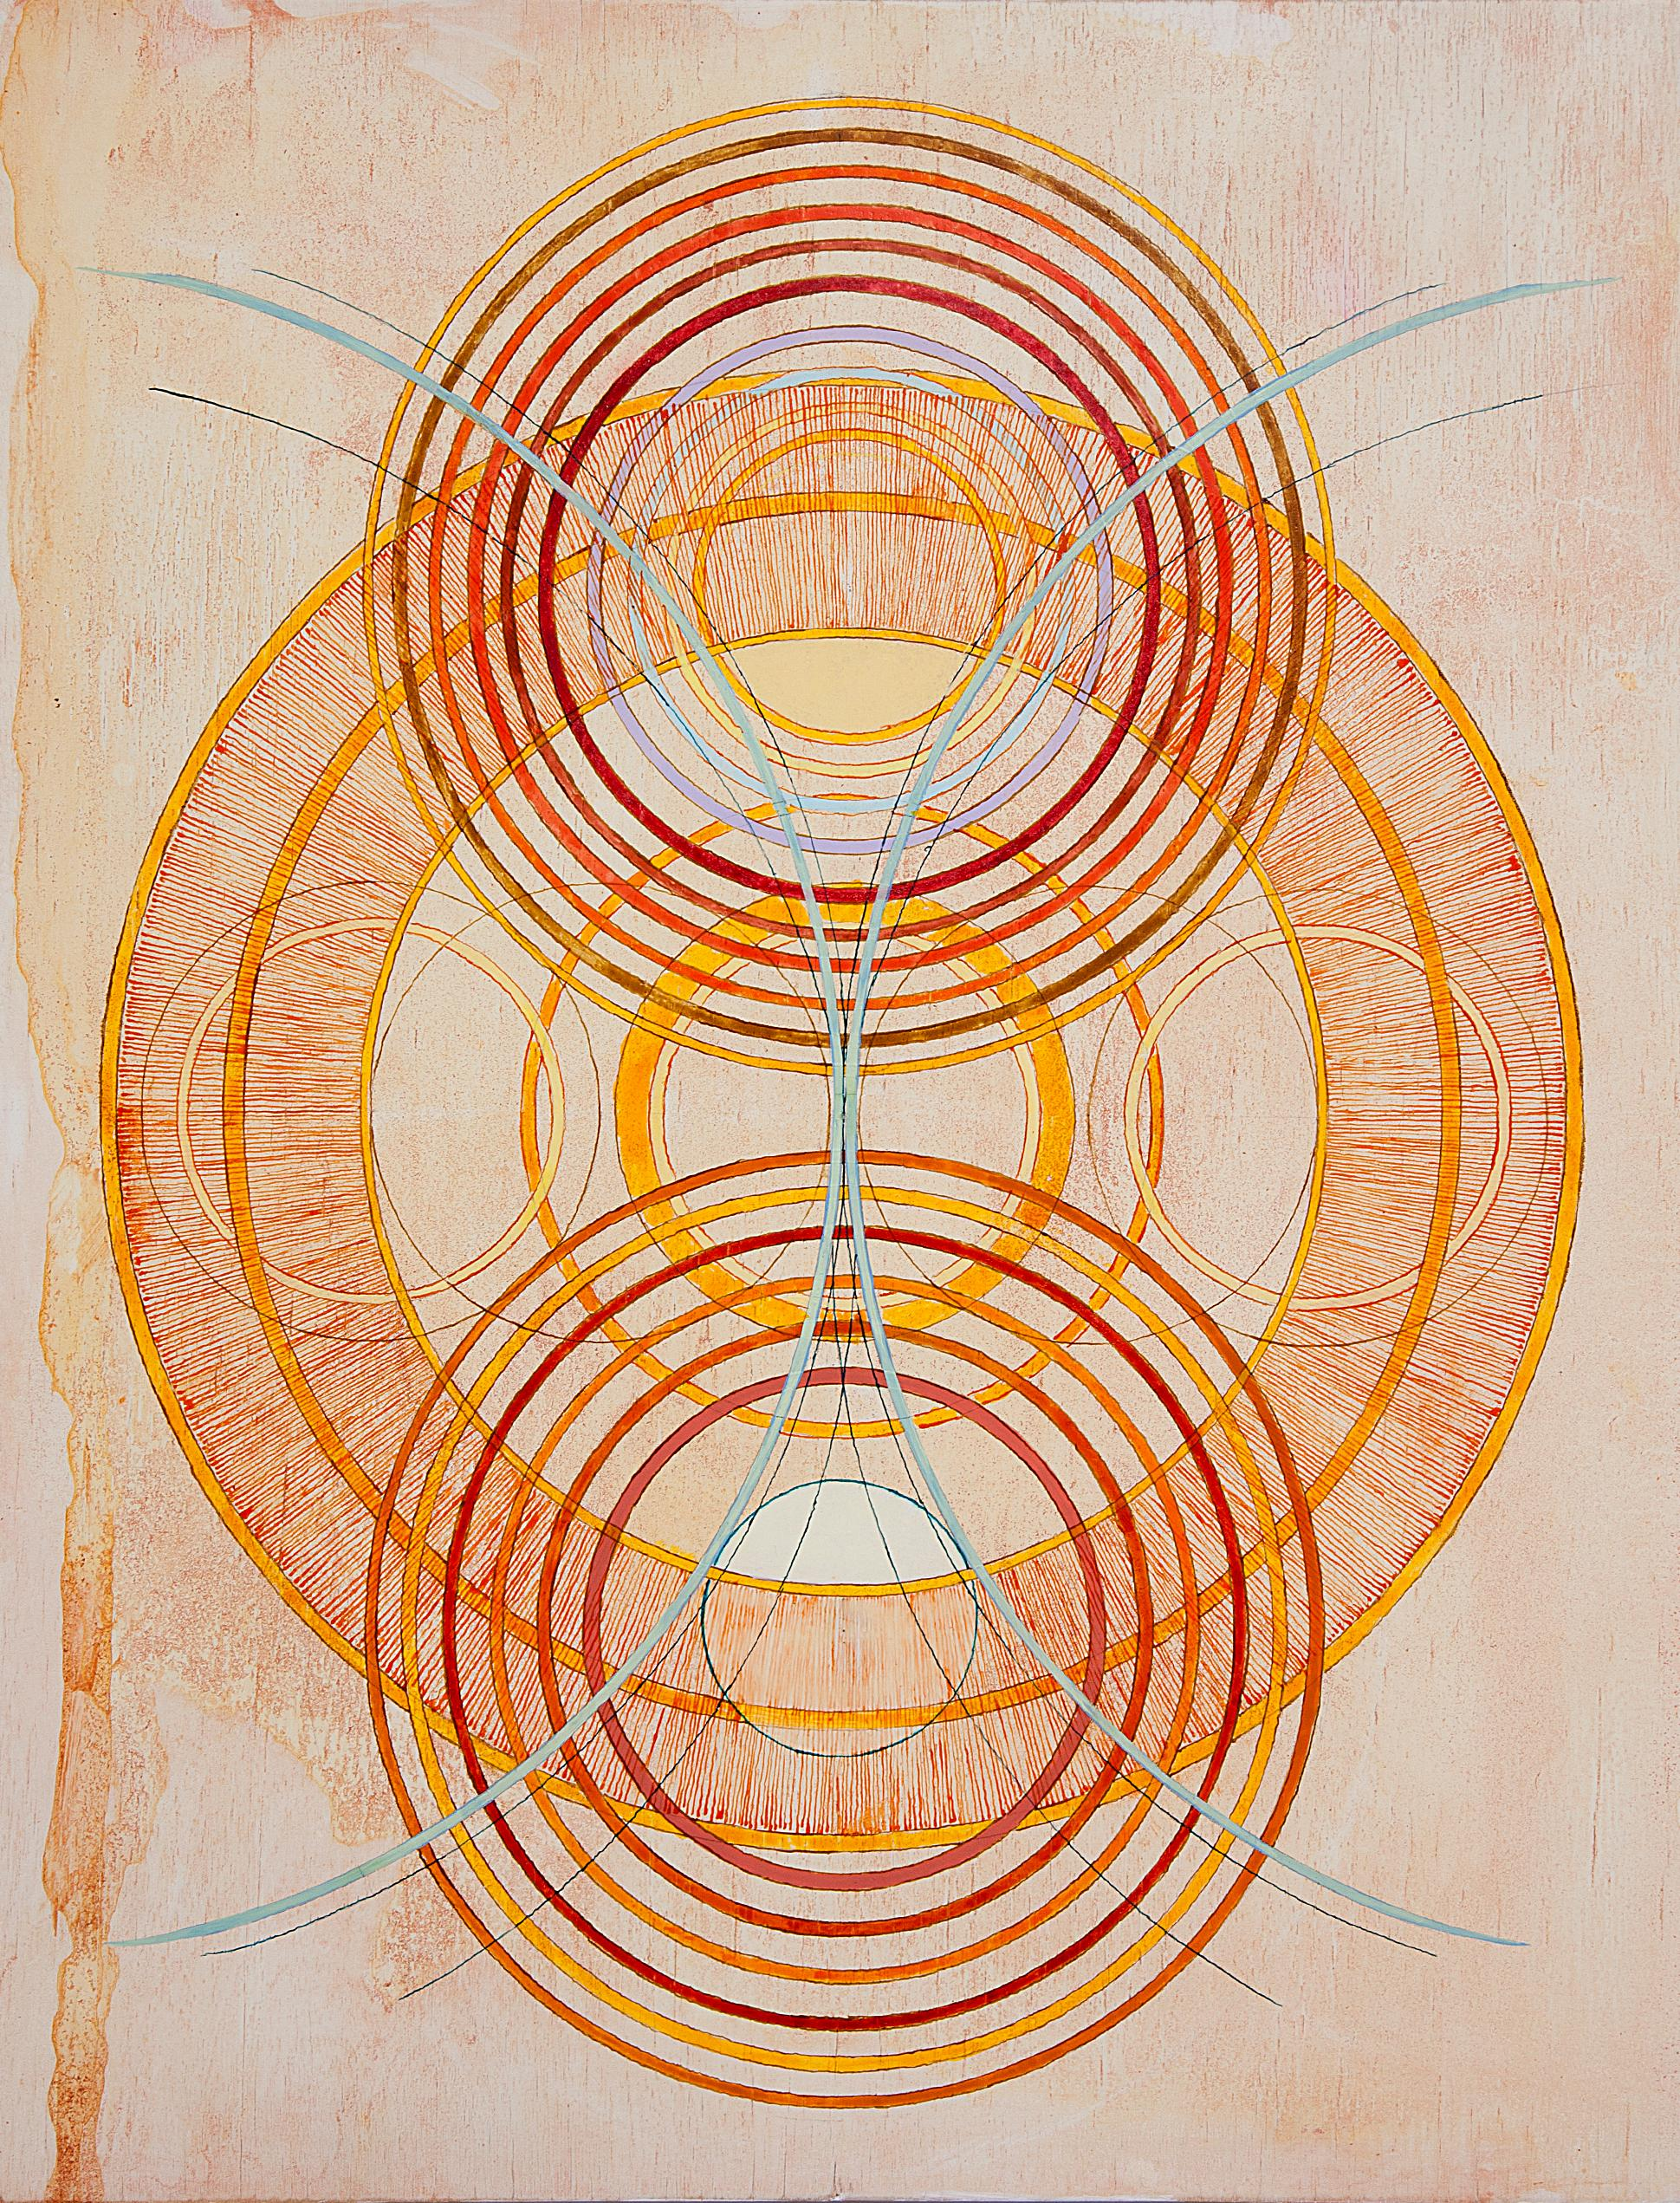 Tayo Heuser, Transverse Wave, 2016, ink on wood, Geometric Abstraction, Meditate